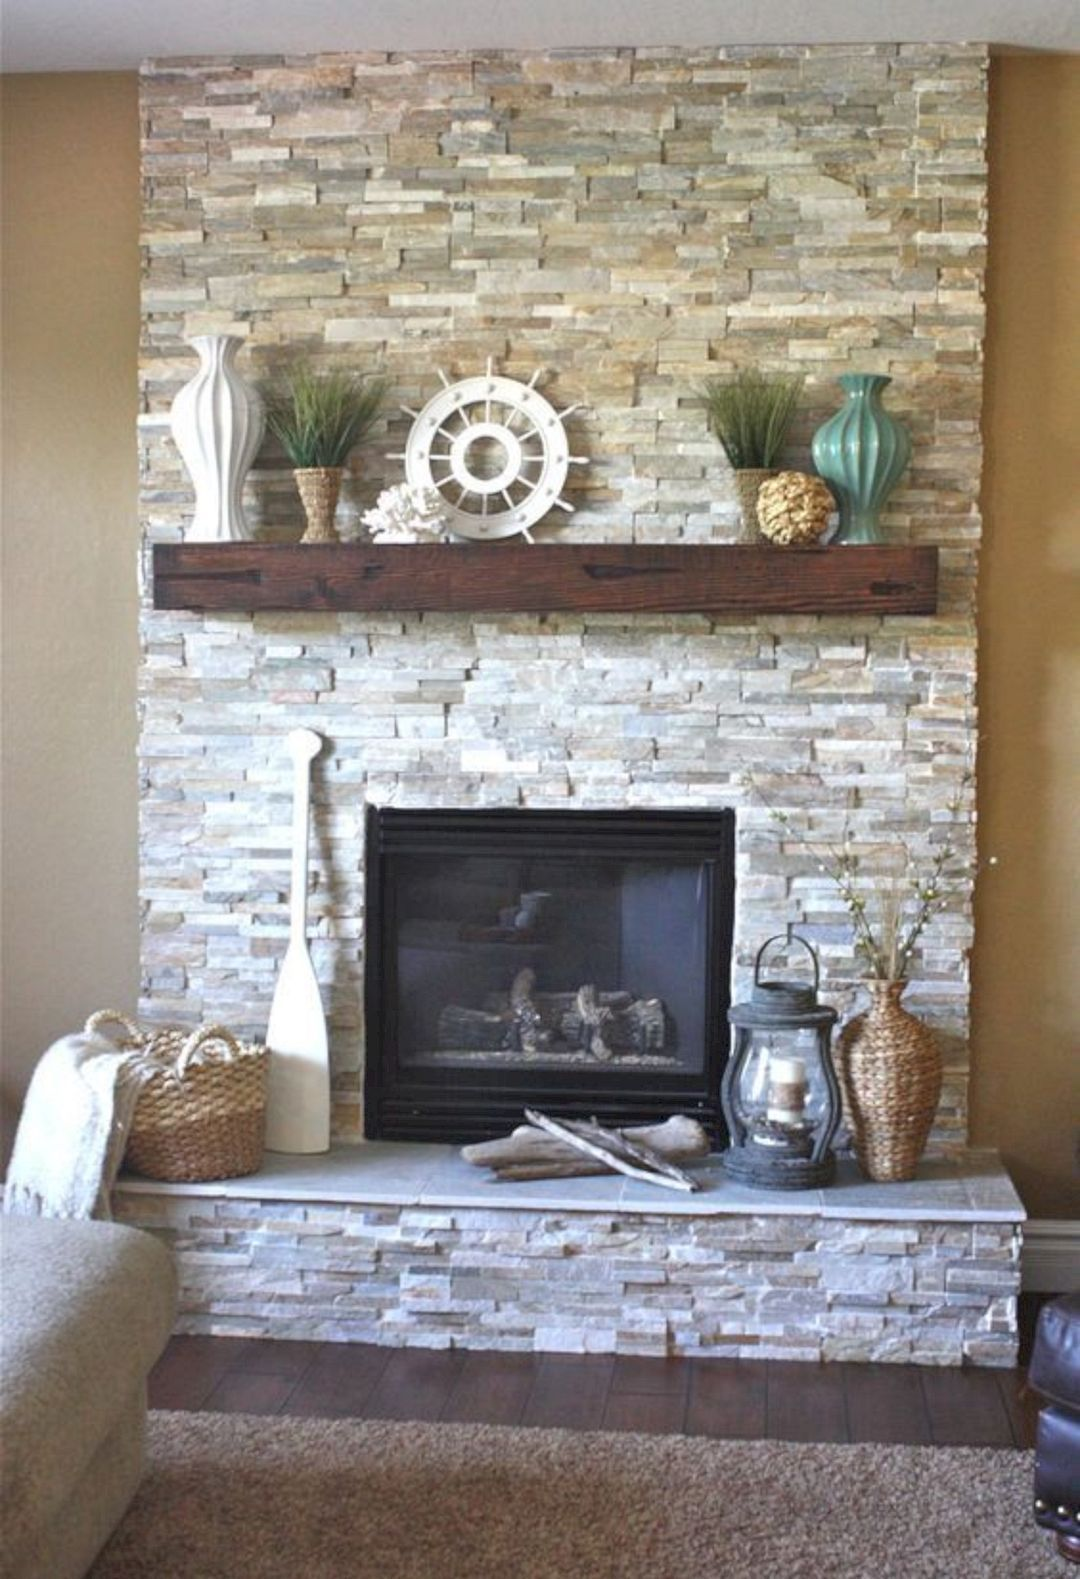 20 Stunning Fireplace Decorating Ideas Https Www Futuristarchitecture Com 29057 Fireplaces Dec Stacked Stone Fireplaces Stone Fireplace Mantel Home Fireplace